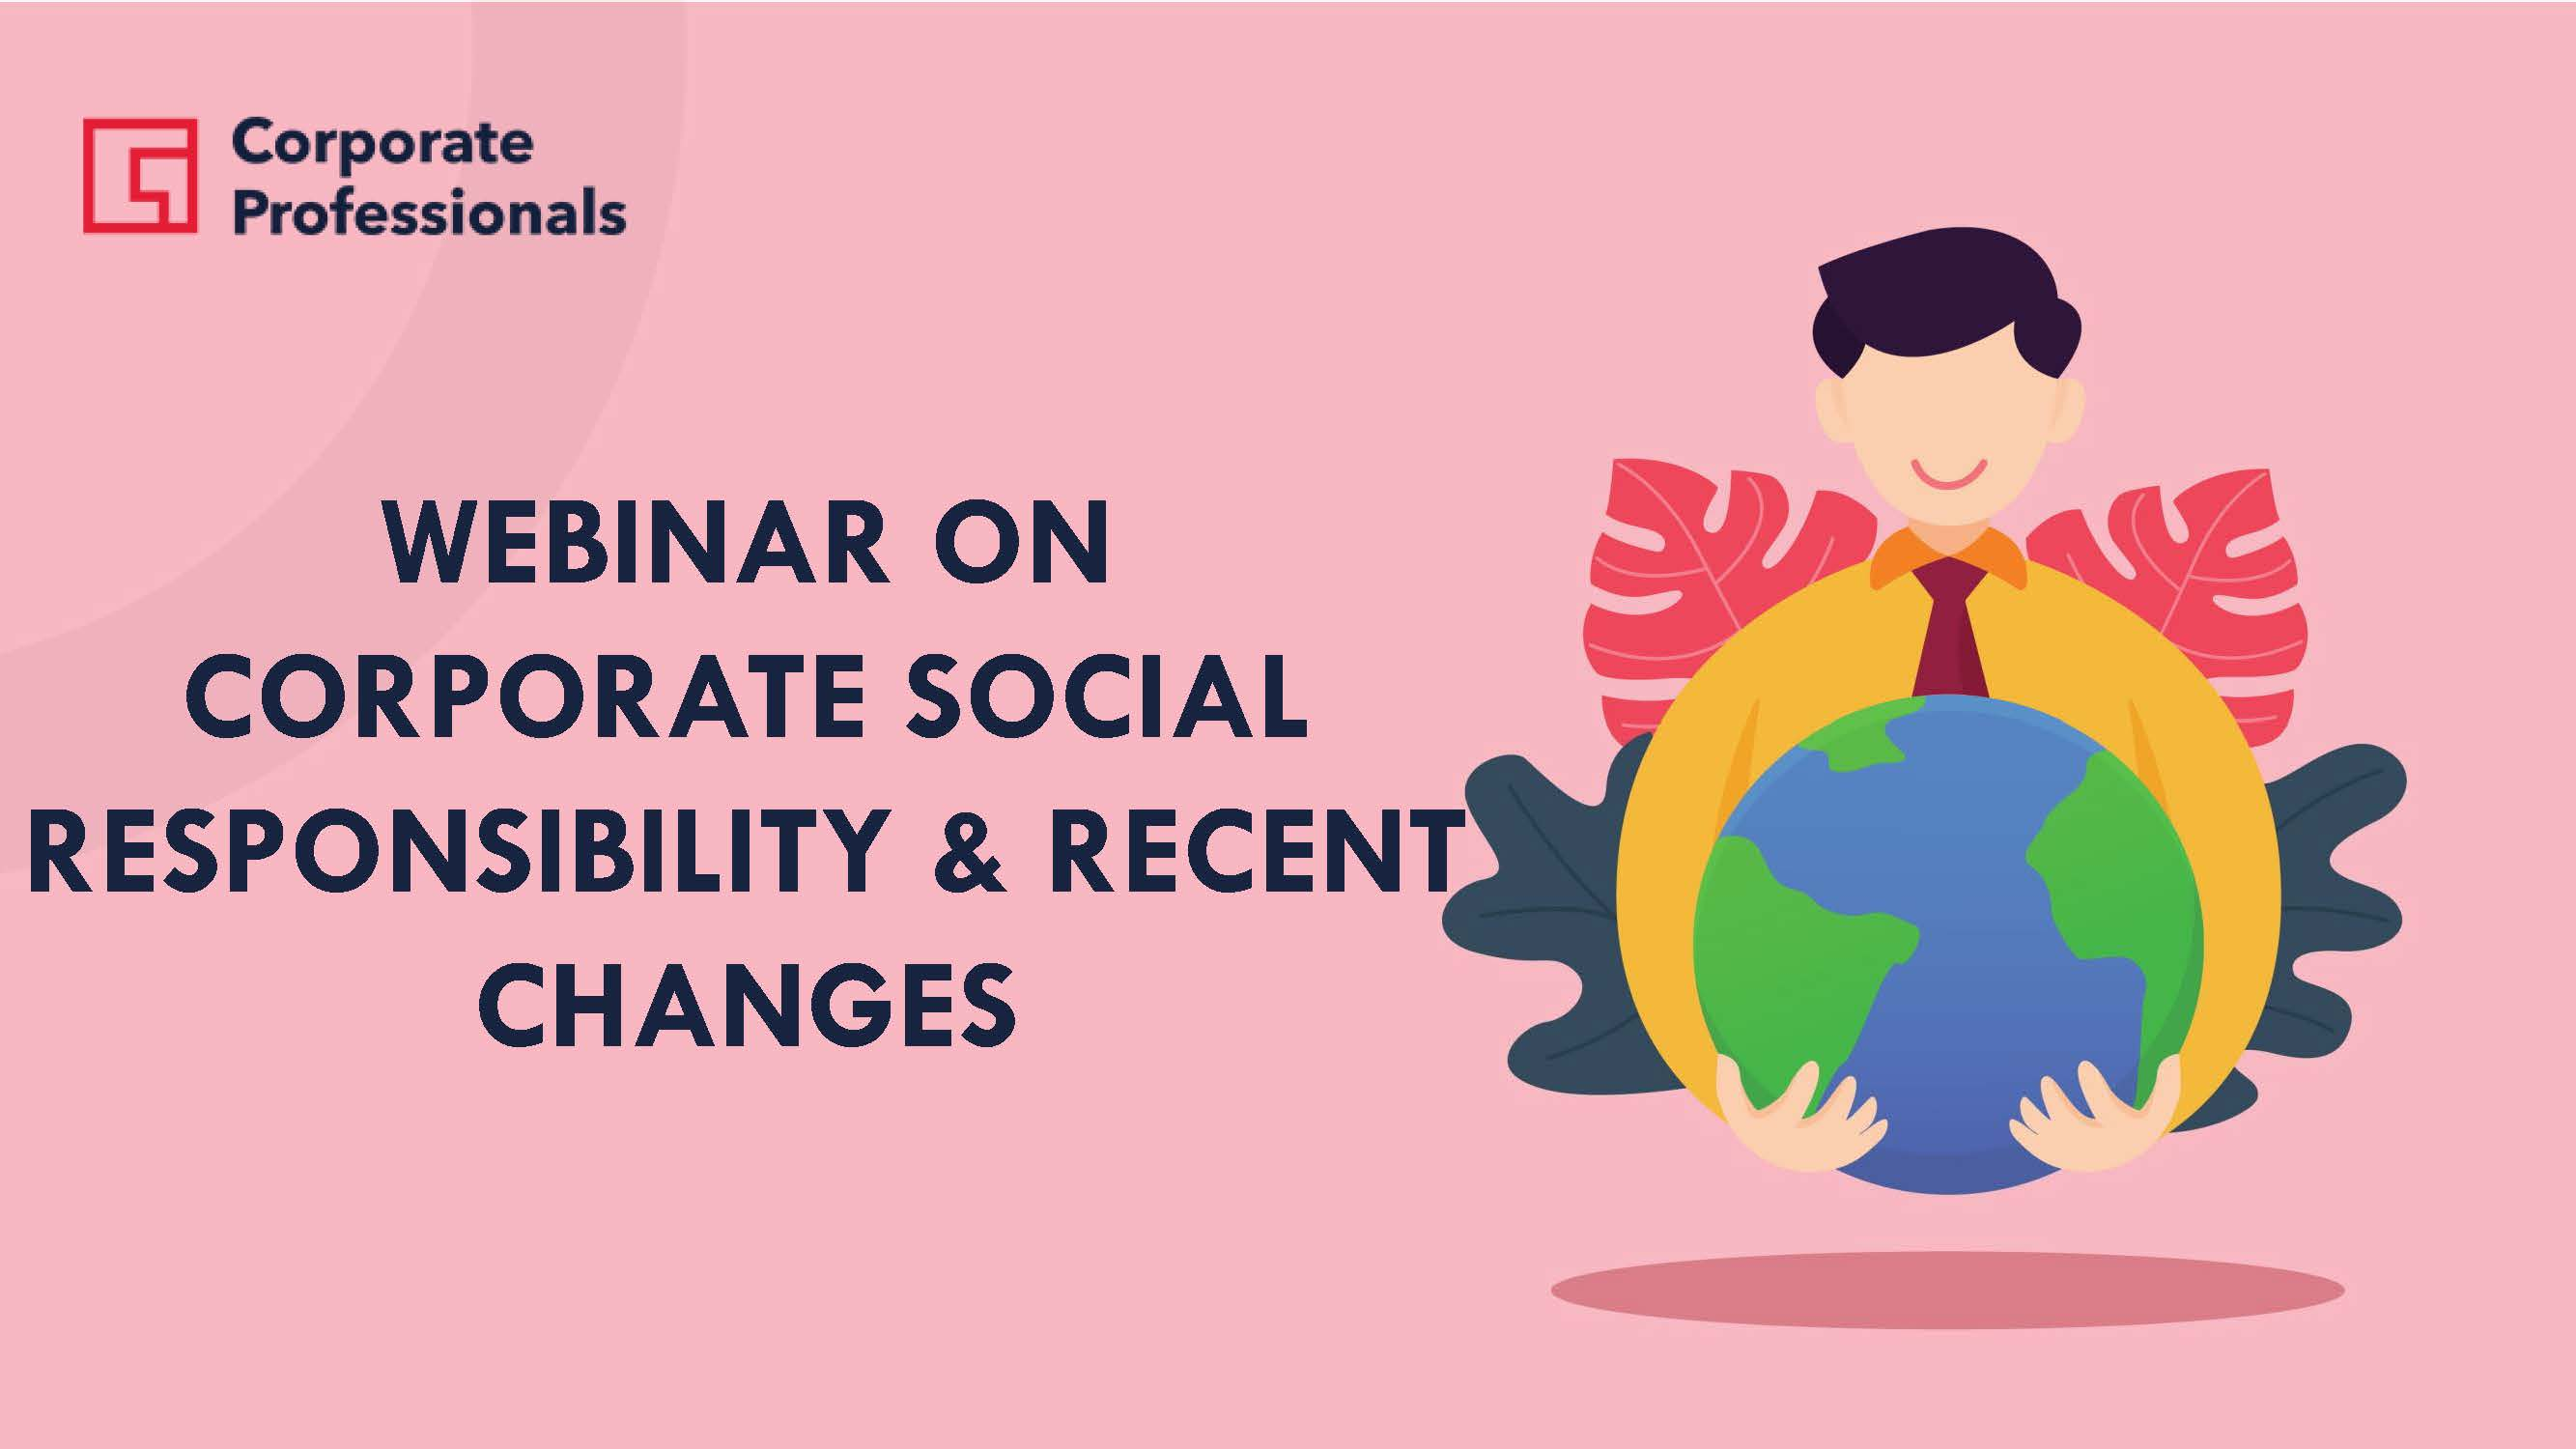 Corporate Social Responsibility & Recent Changes